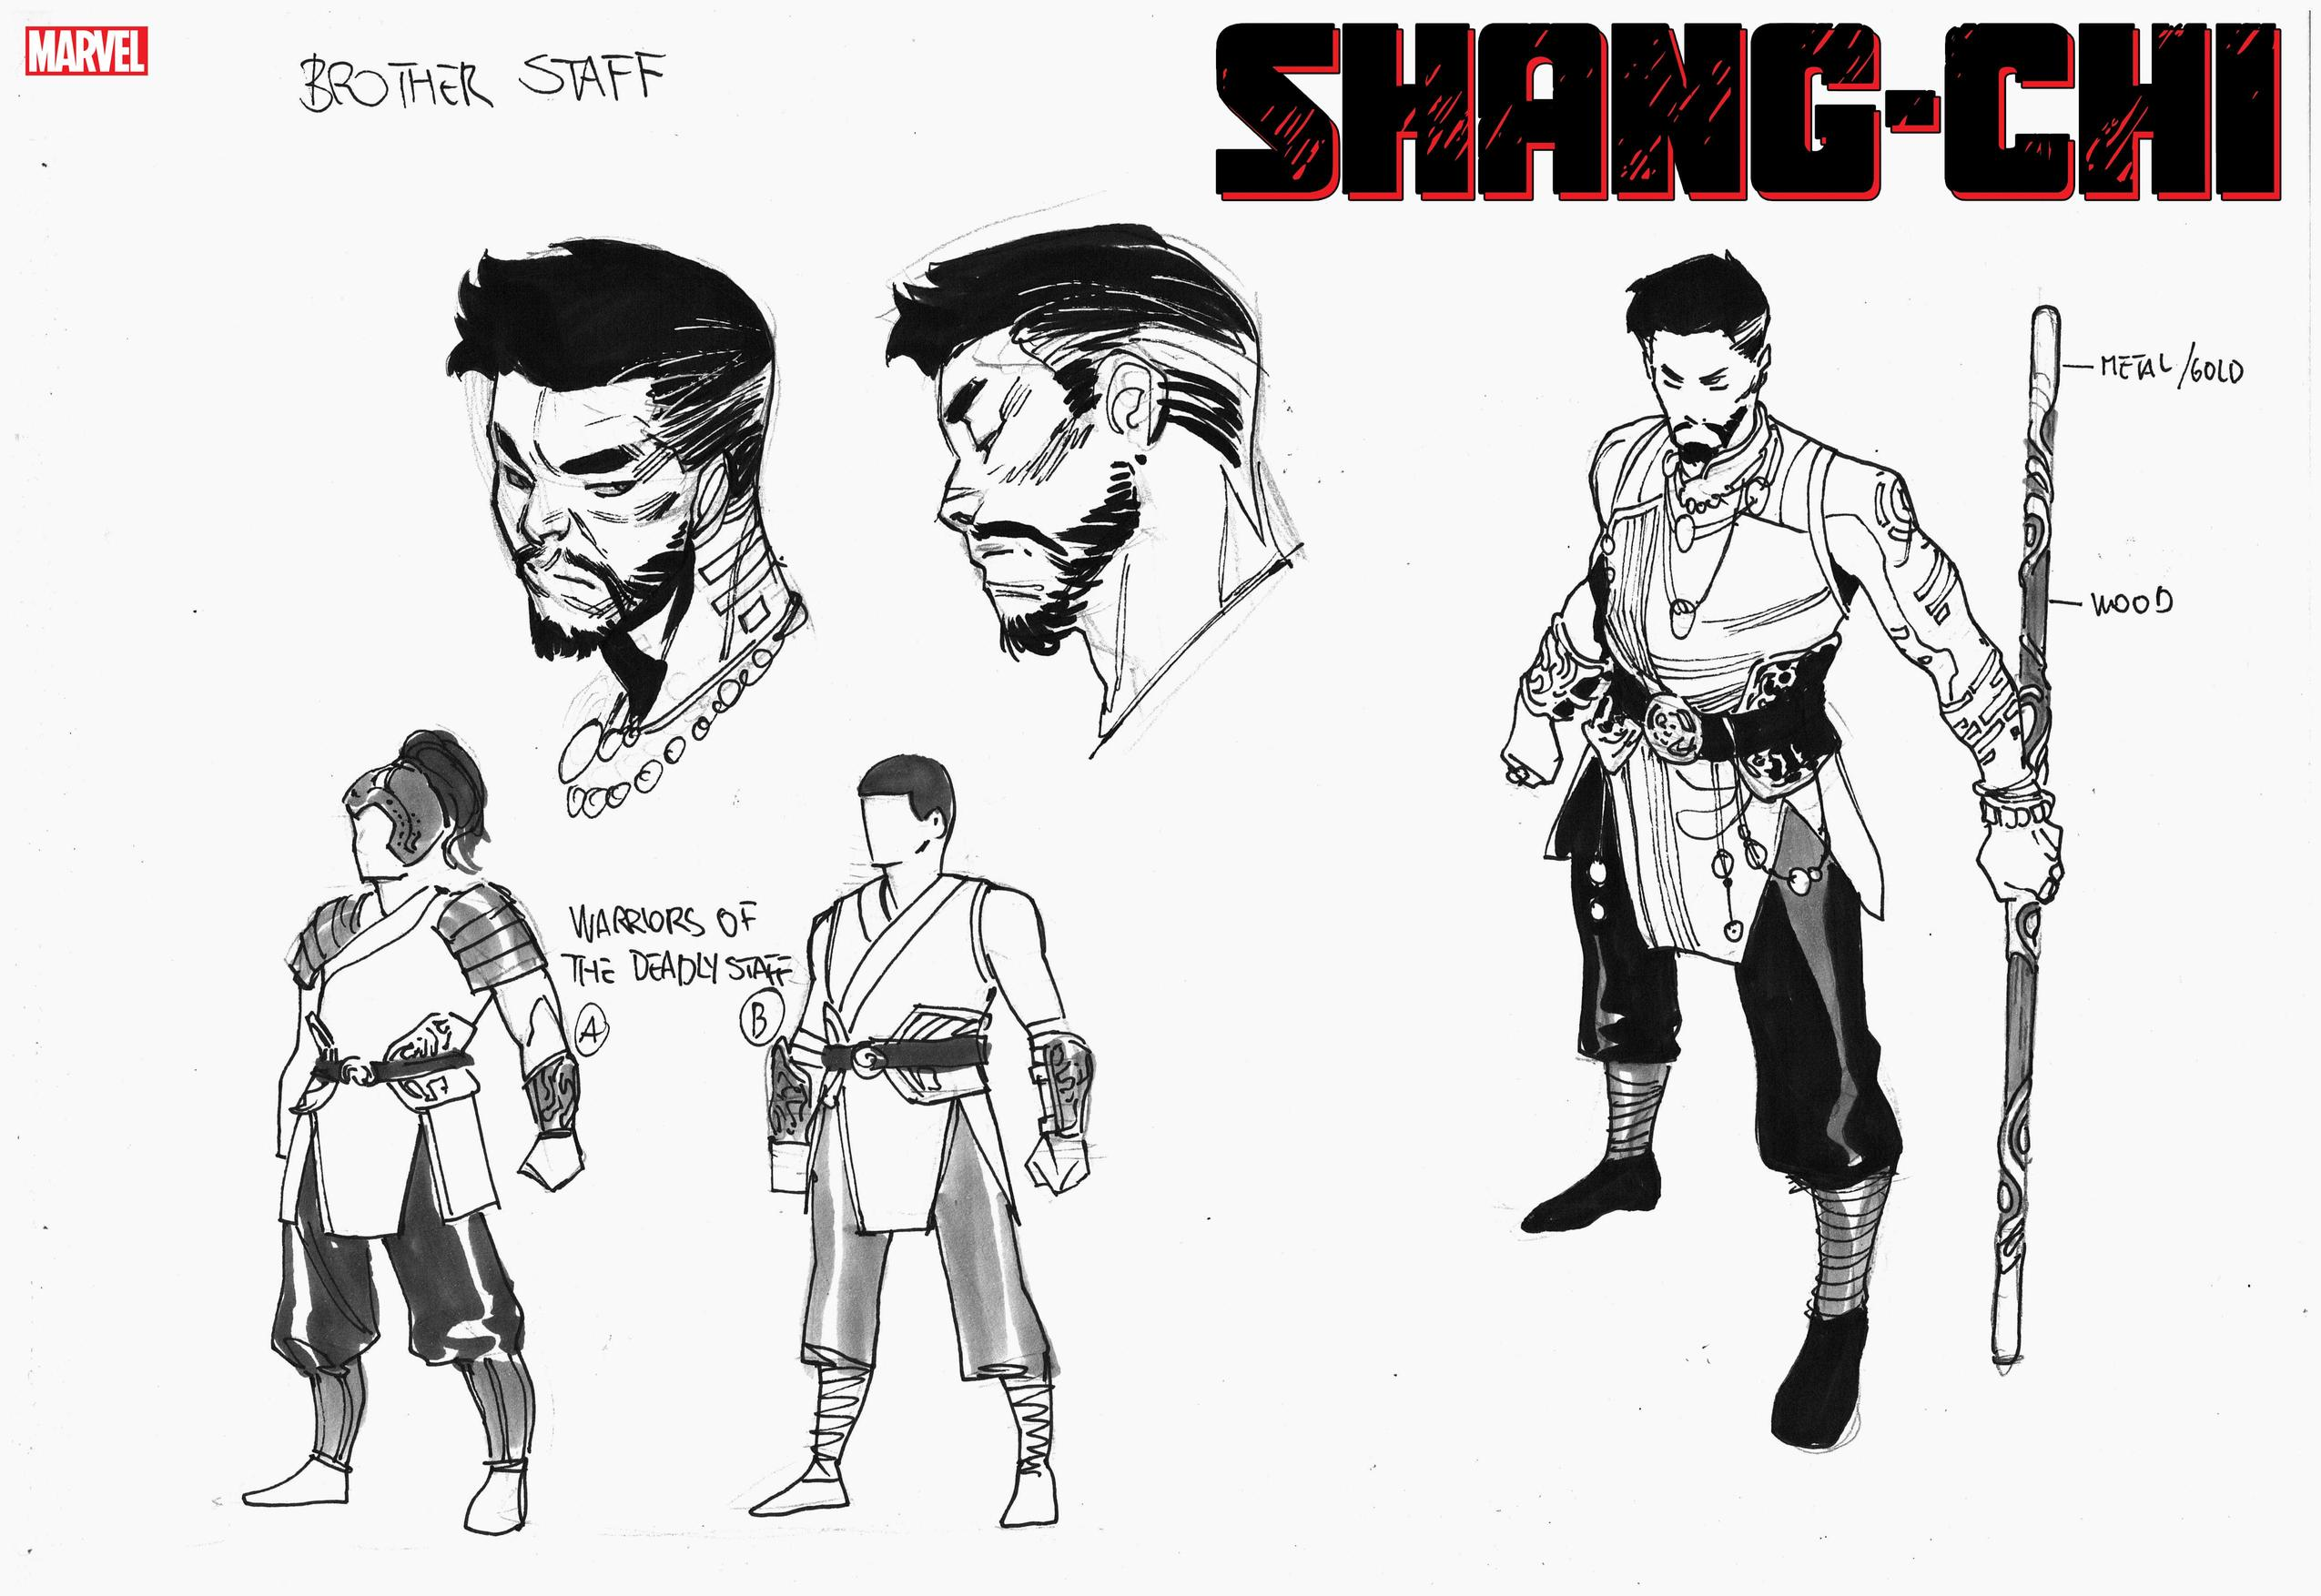 Shang-Chi Brother Staff character design